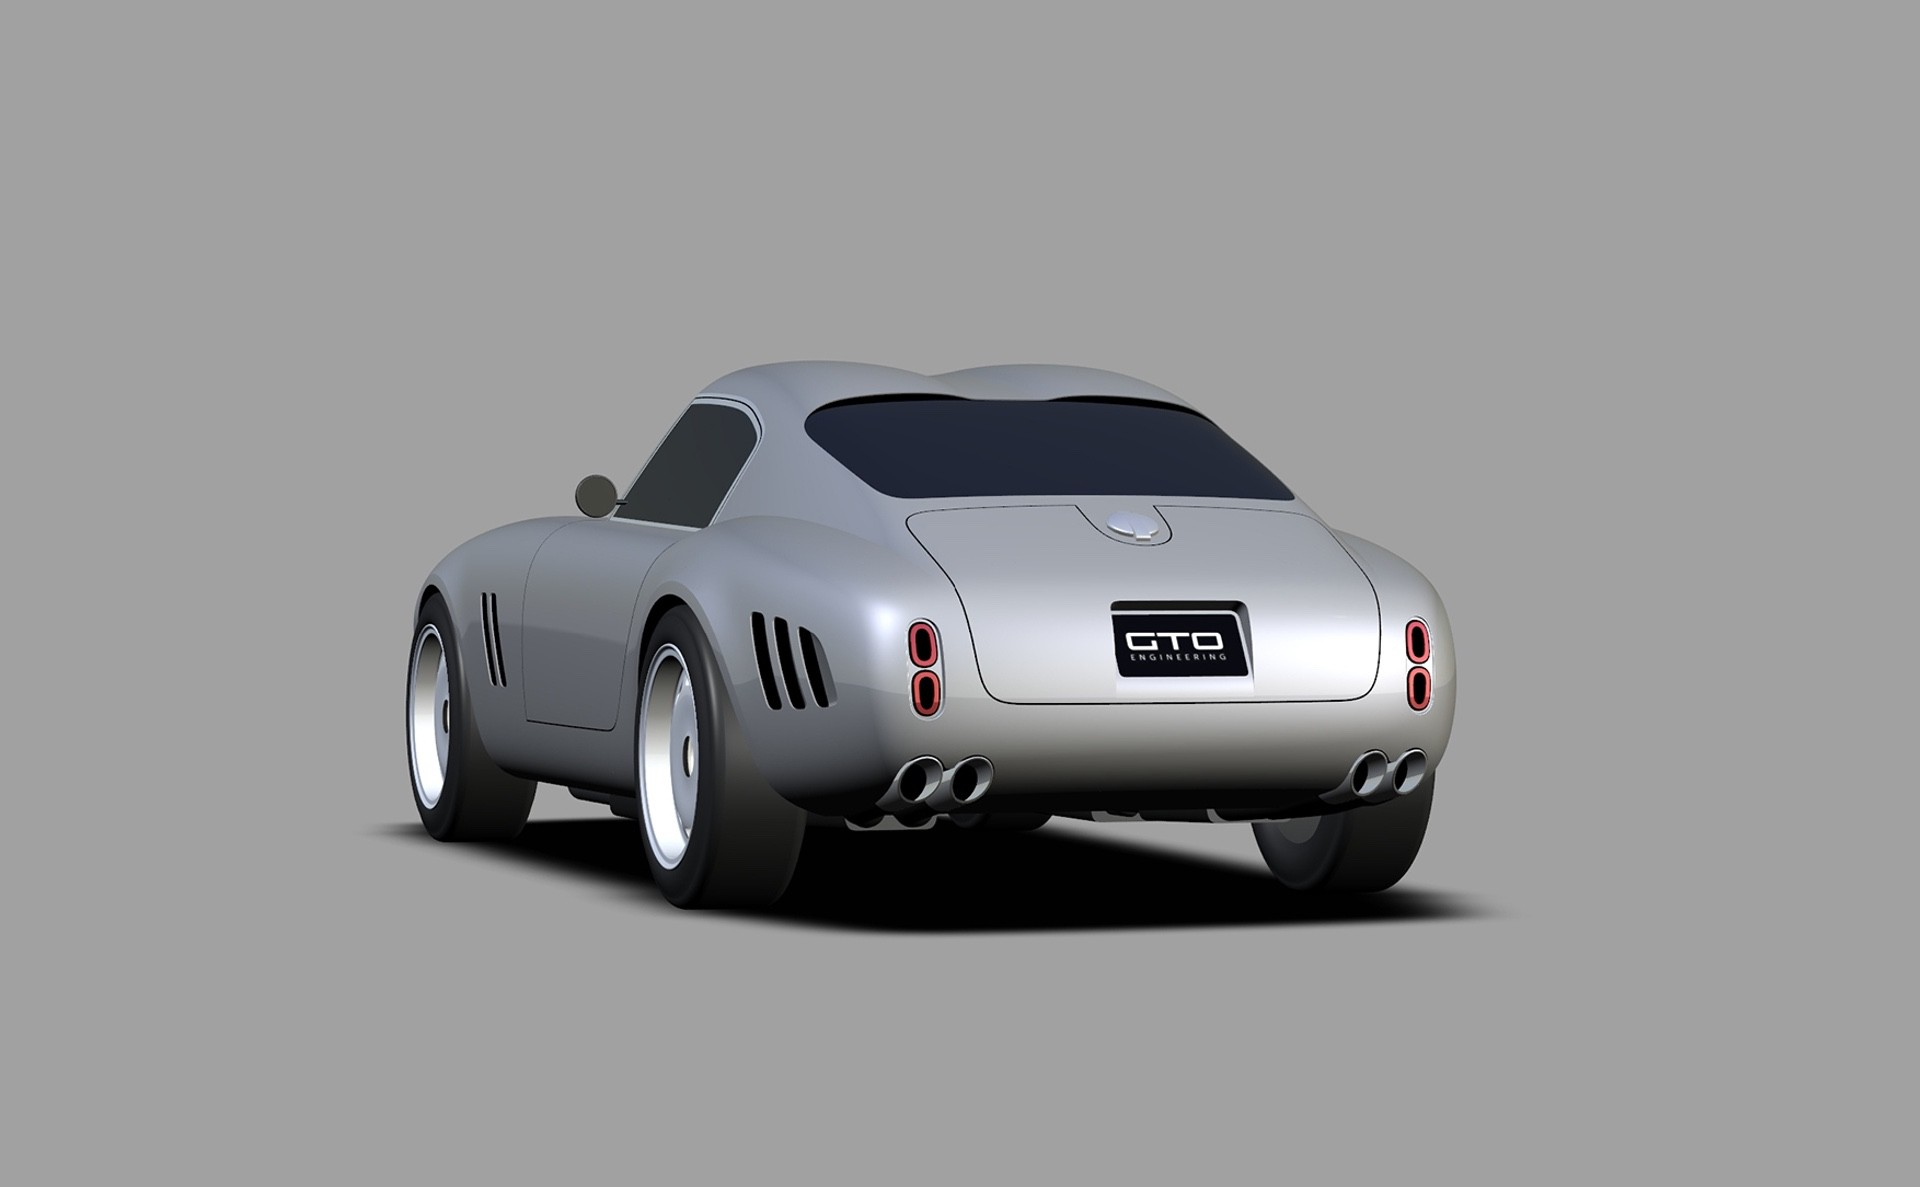 3.-Project-Moderna-underway-with-key-engine-and-design-updates-revealed-by-GTO-Engineering